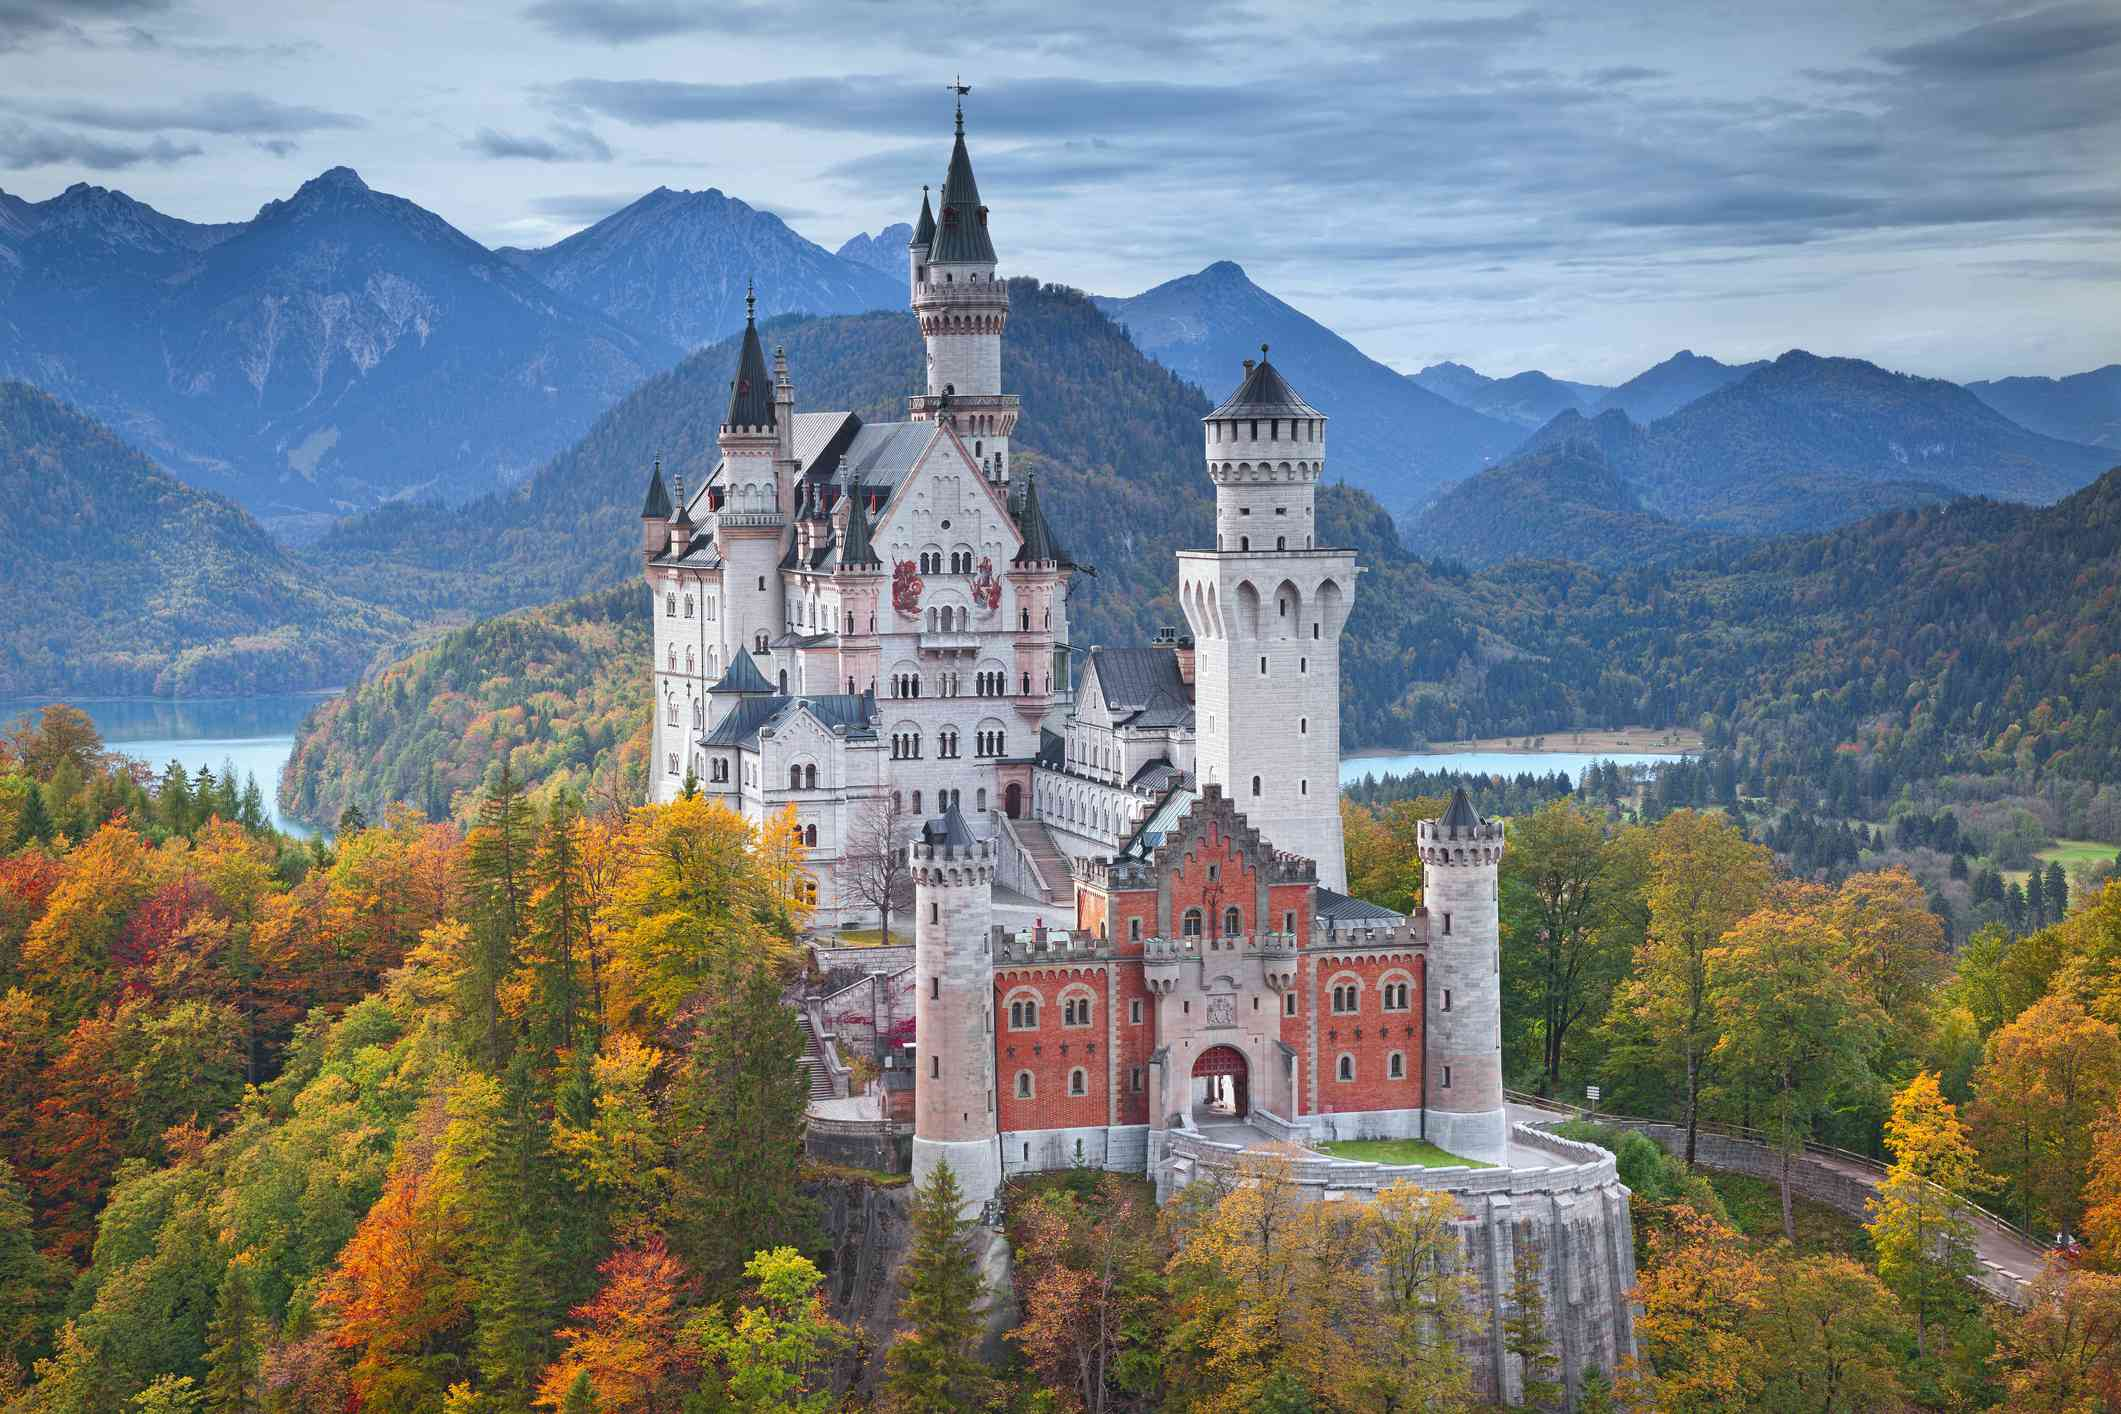 Aerial view of Neuschwanstein Castle surrounded by trees in shades of red, orange, green, and gold during autumn with mountain peaks and blue skies in the distance